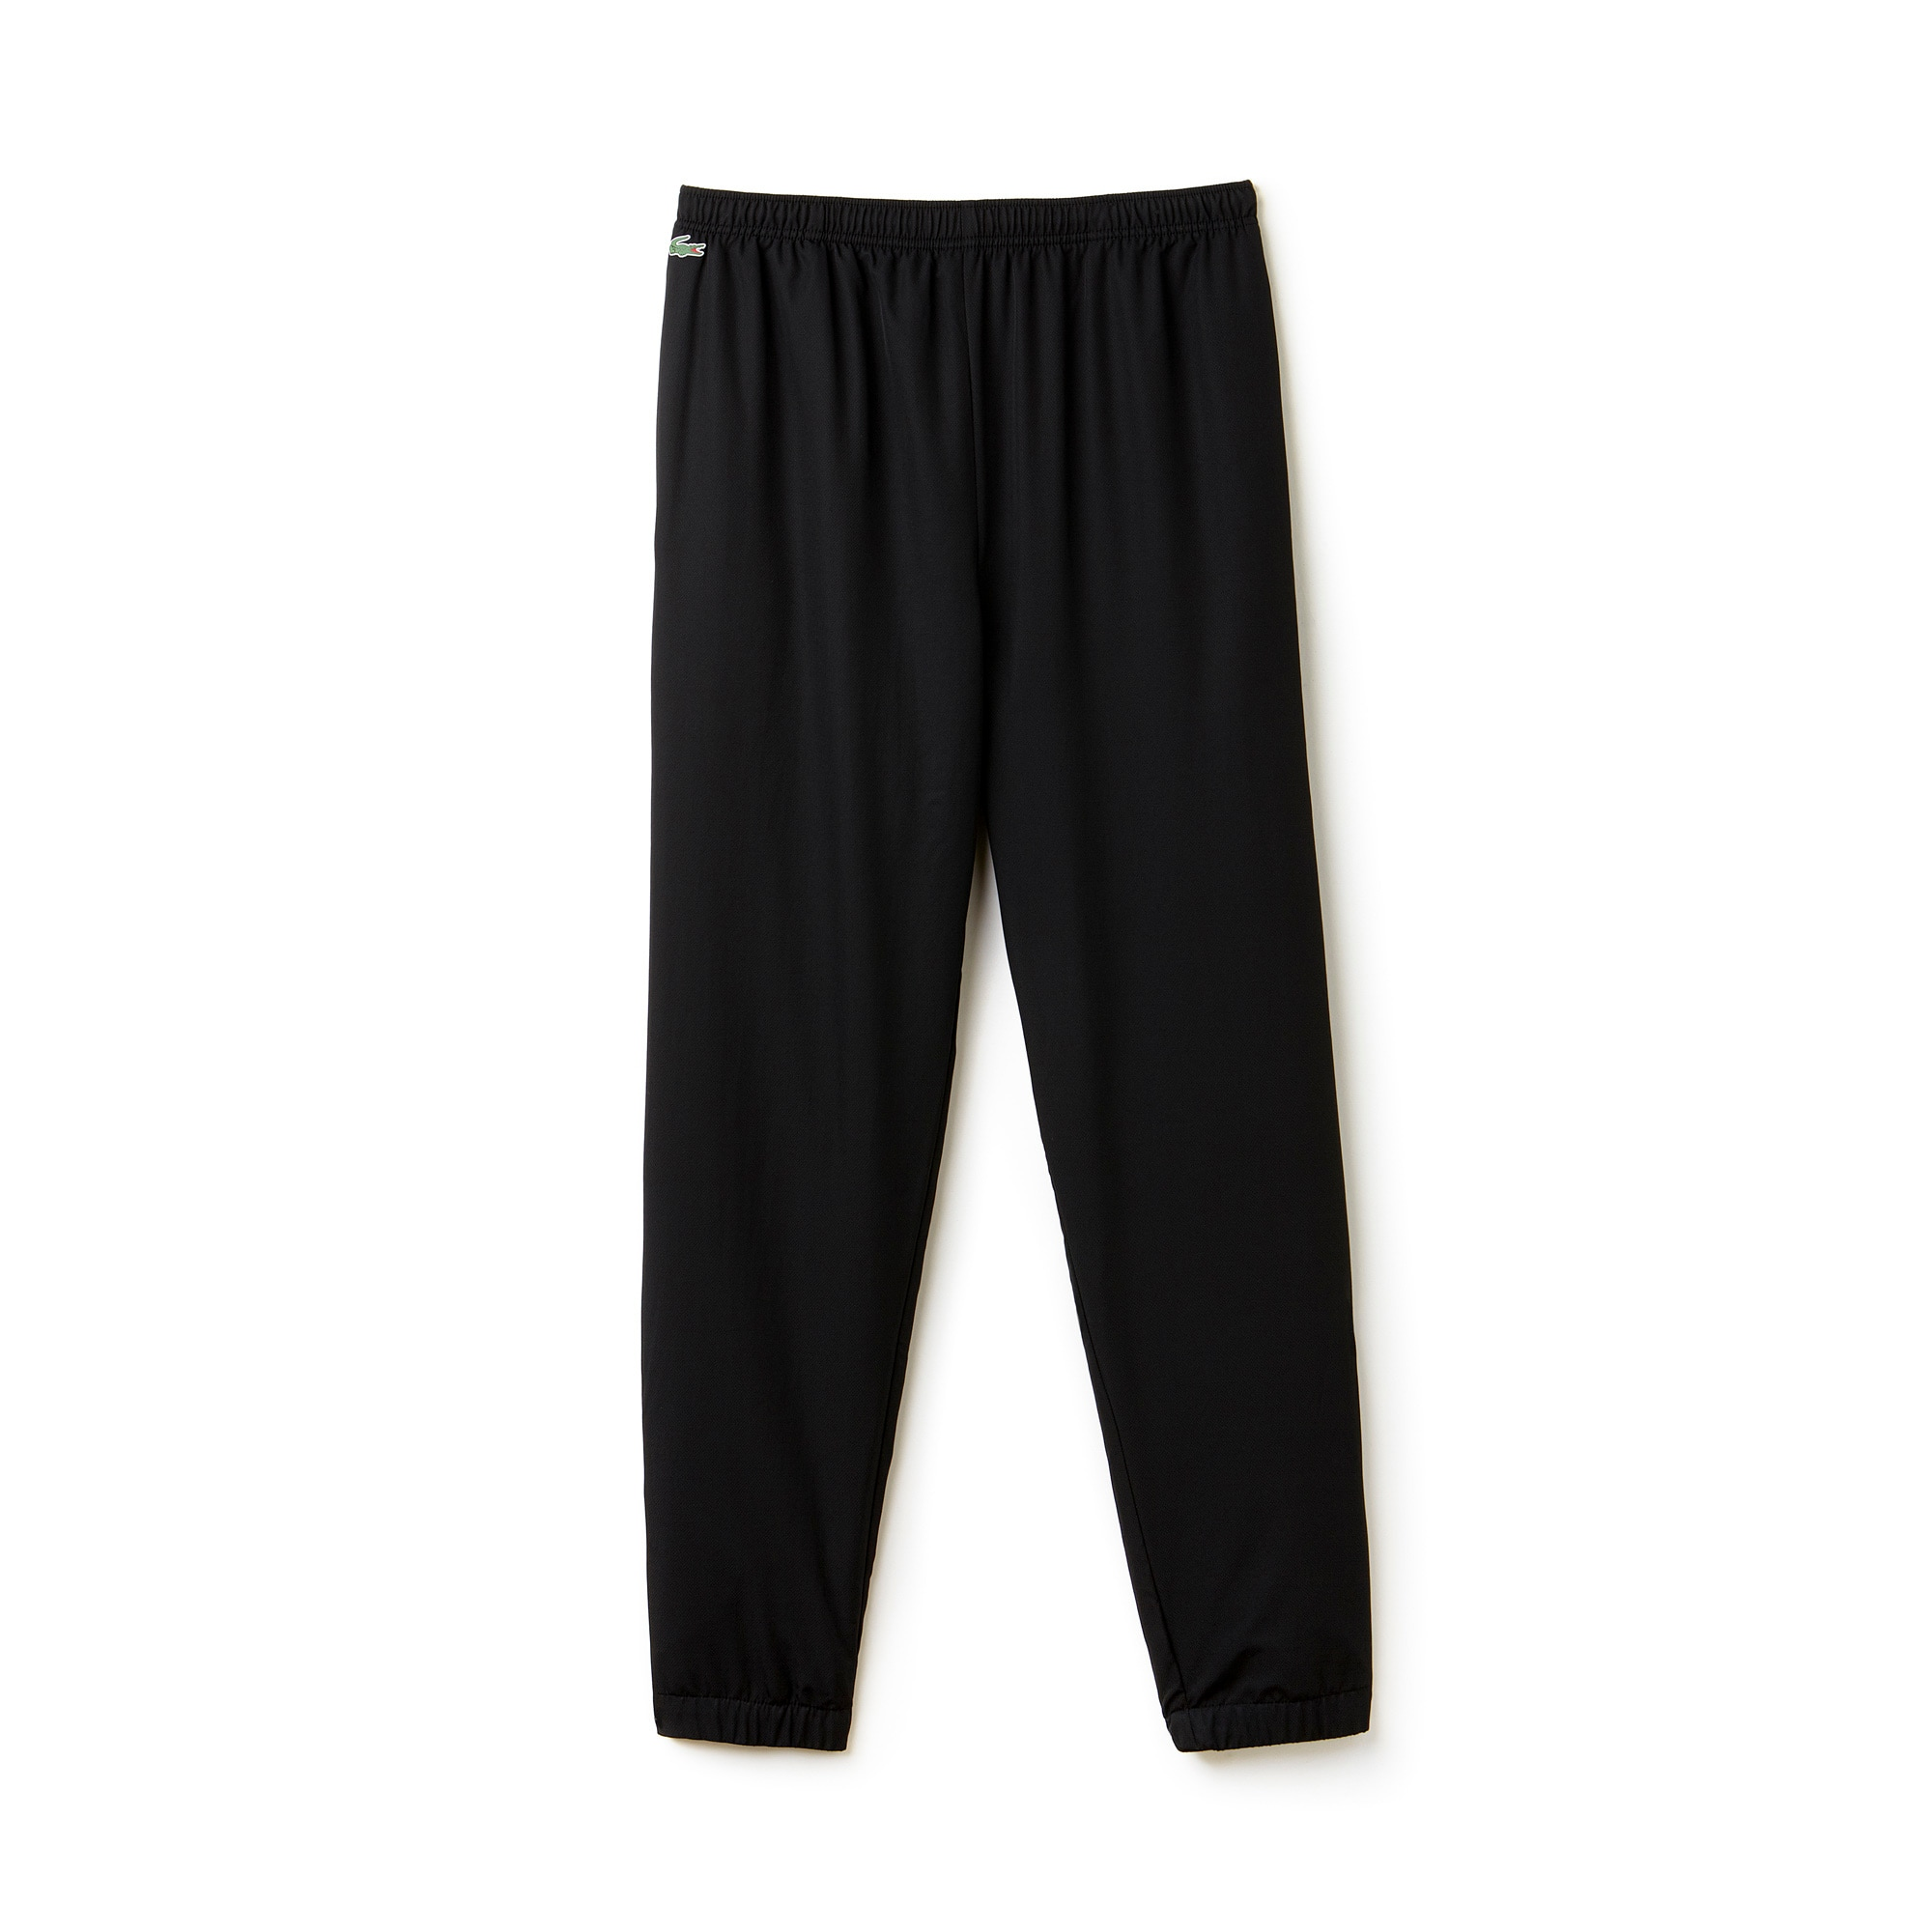 contrast bands sweatpants Off-white